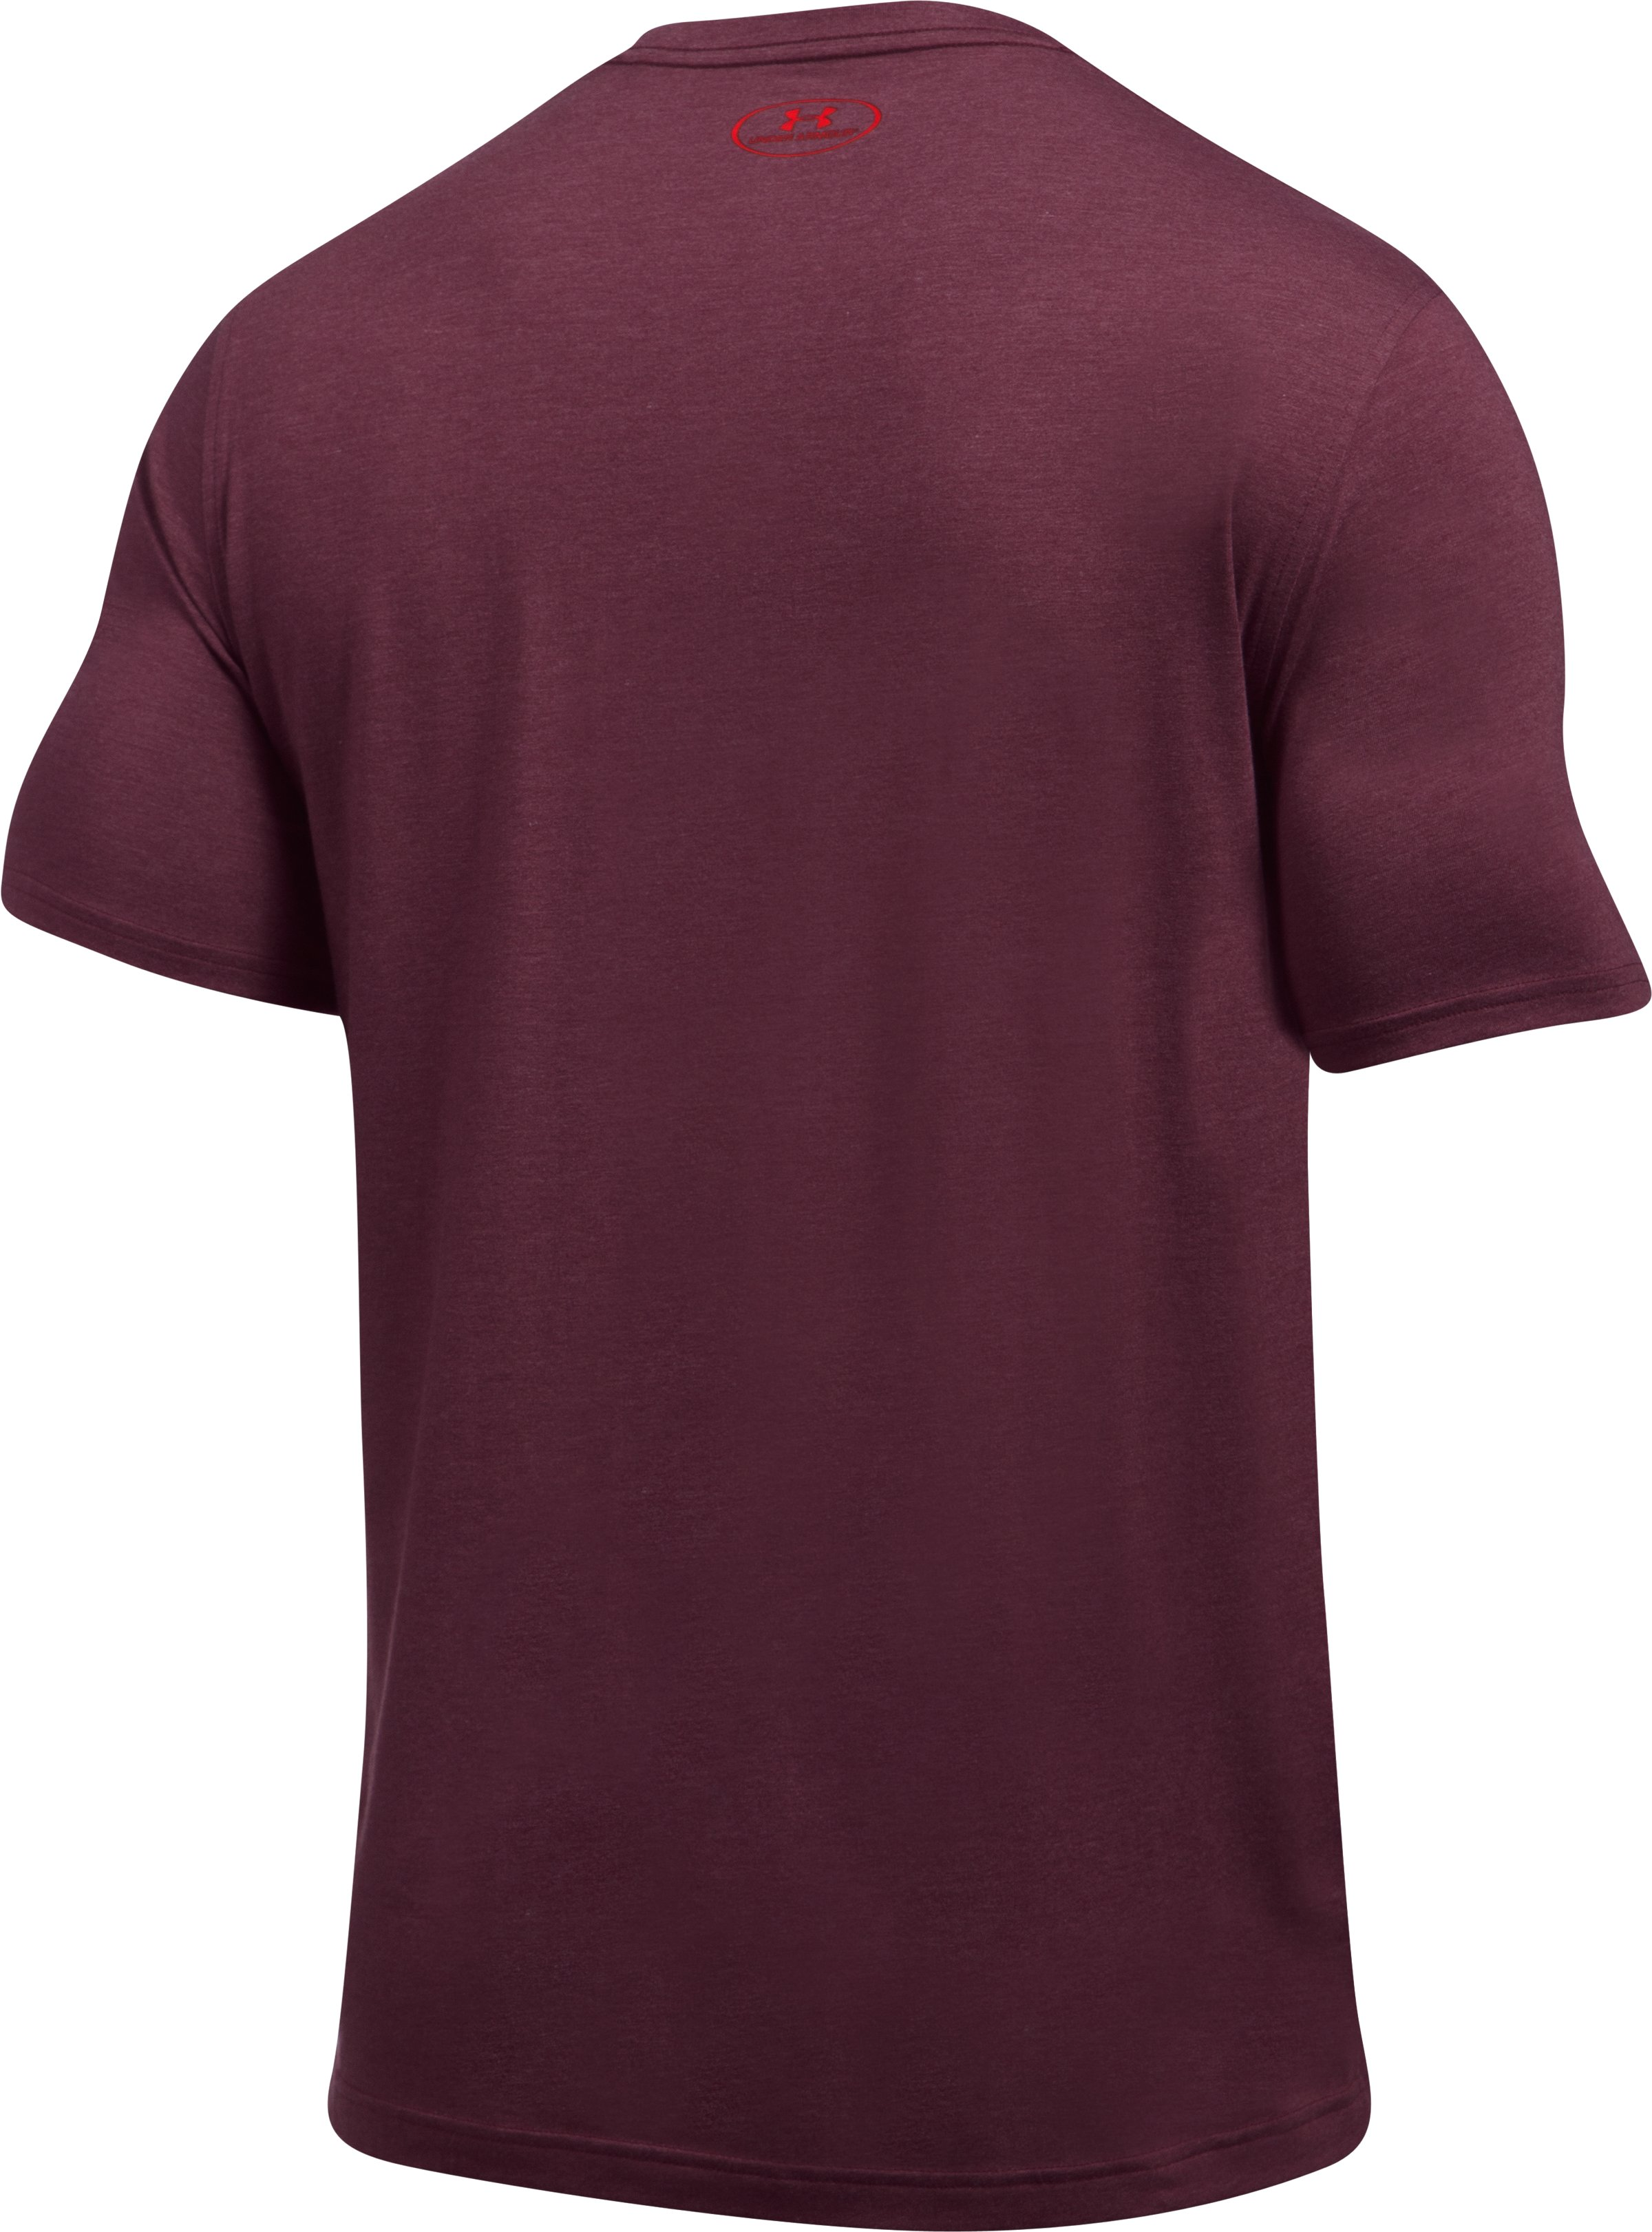 Men's UA Charged Cotton® Left Chest Lockup T-Shirt, RAISIN RED, undefined